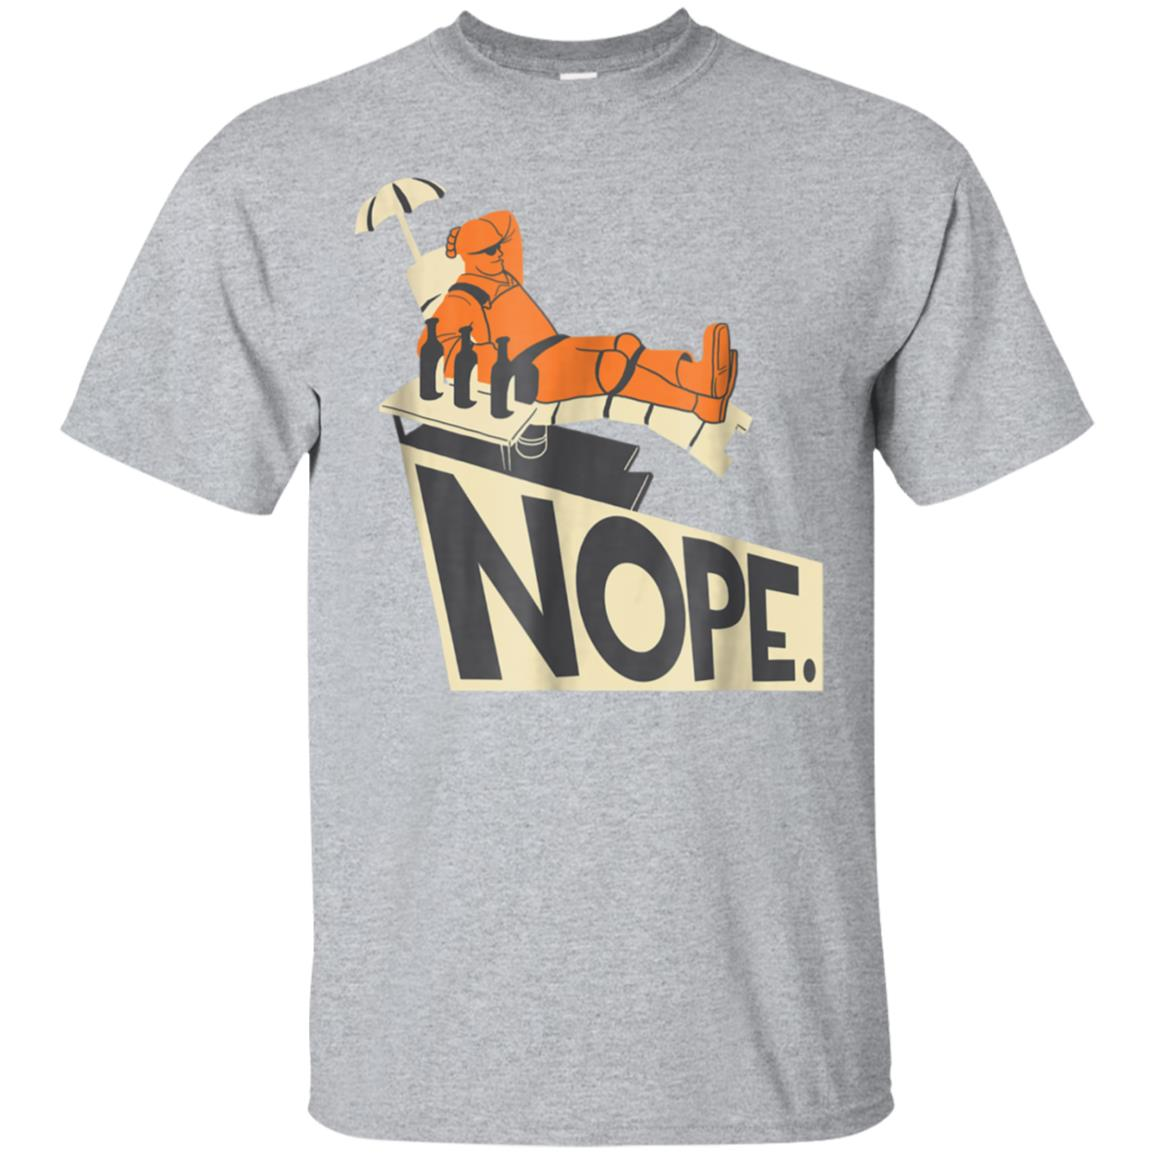 Engineer Team Fortress 2 Nope avi t-shirt - TRS088 99promocode